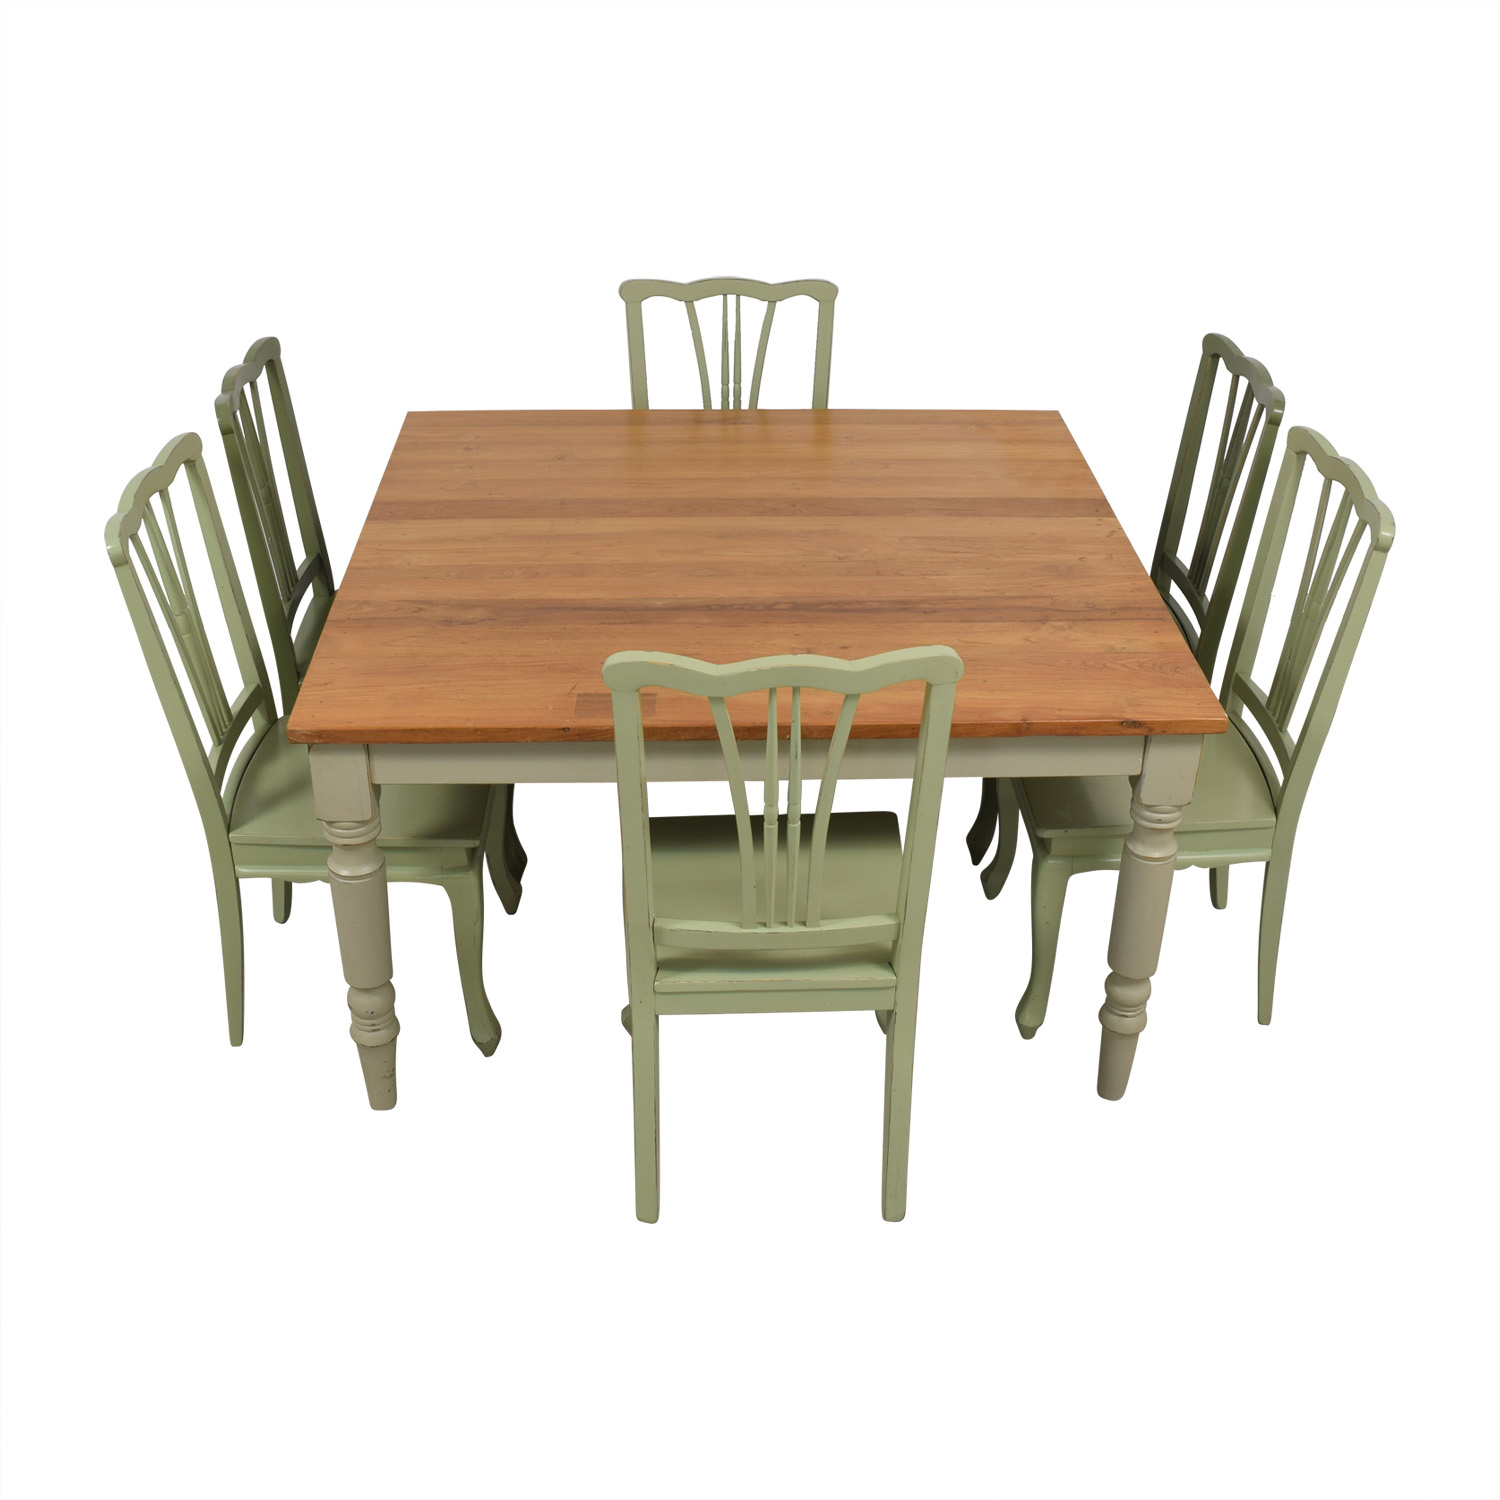 Wood Extendable Dining Set with Green Chairs